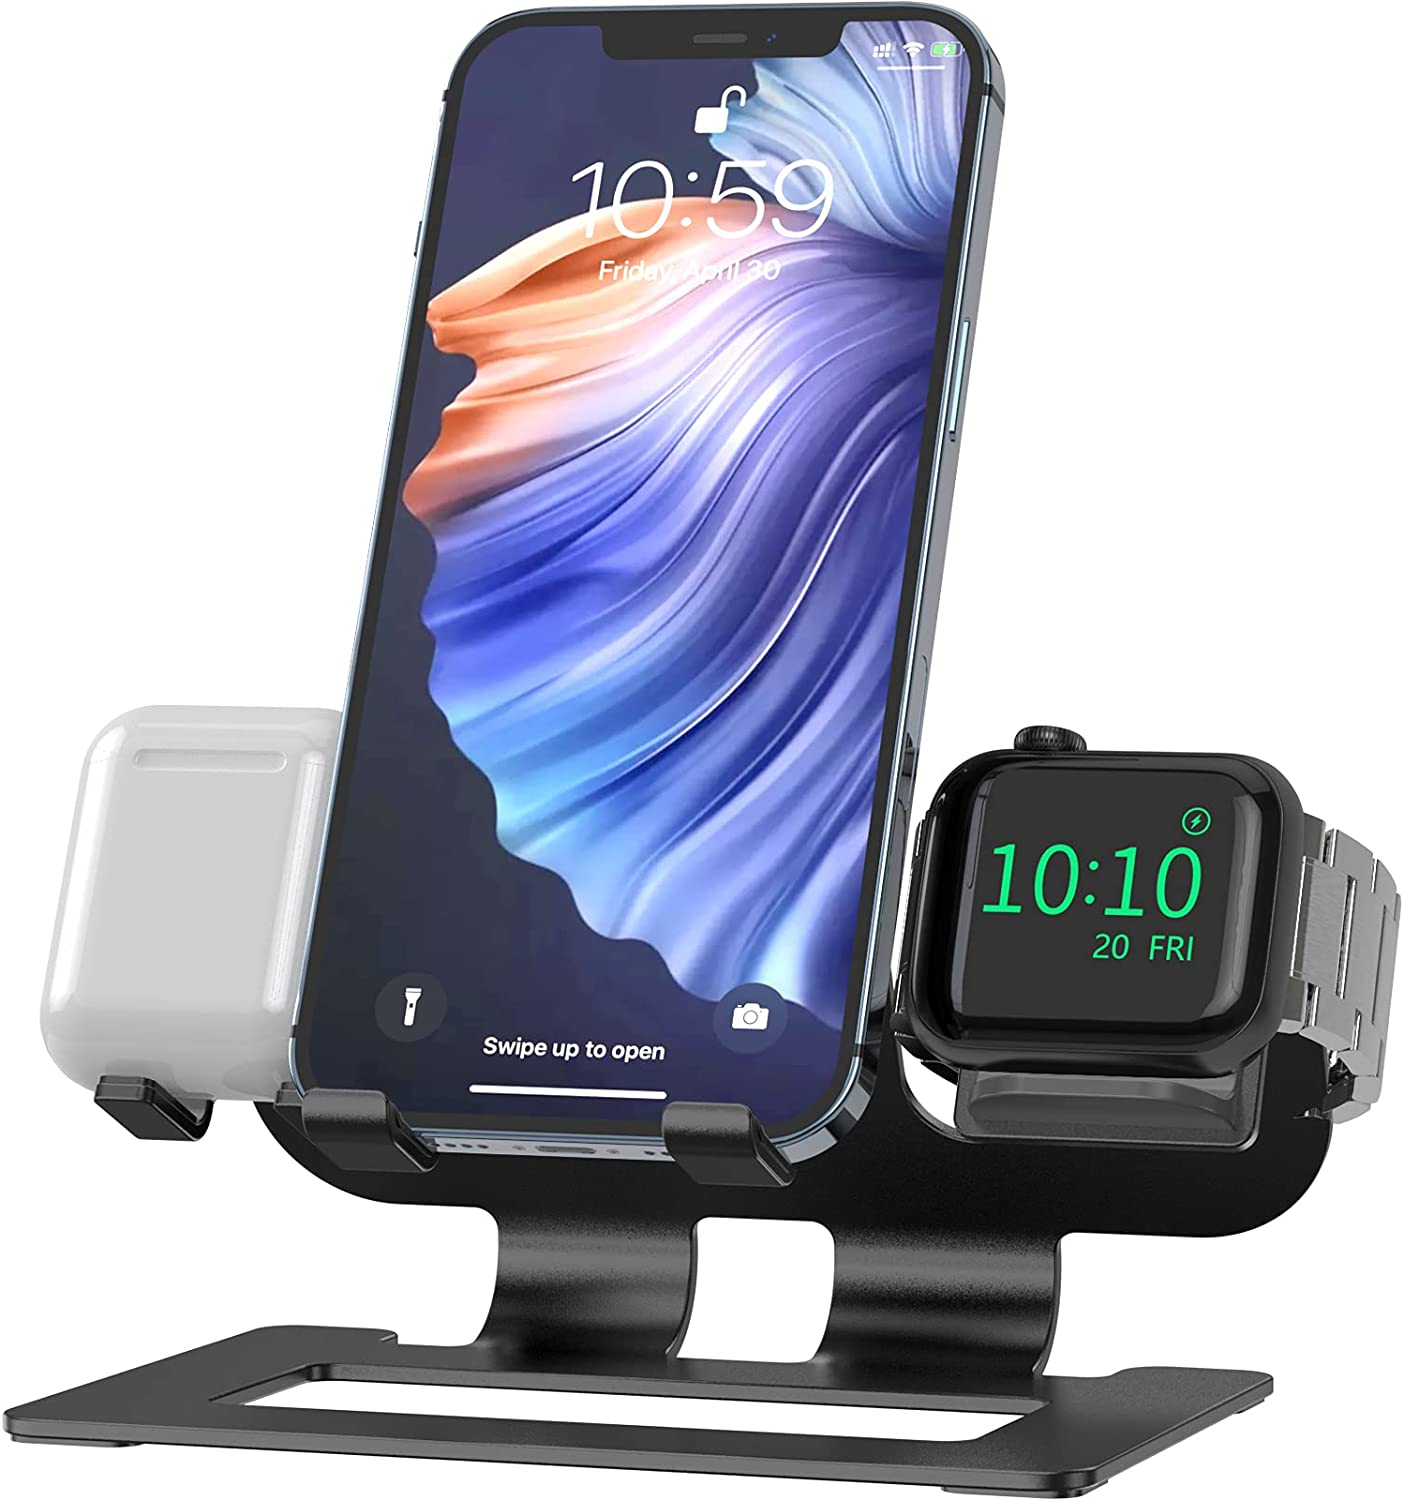 Deszon 3 in 1 Charging Station for Apple Watch Stand for iWatch Dock Stand Series SE/6/5/4/3/2/1, Aluminum iWatch Charger Stand for AirPods Pro/2/1 iPhone 12/11/X/XR/8/7/6 Watch Stand - Black